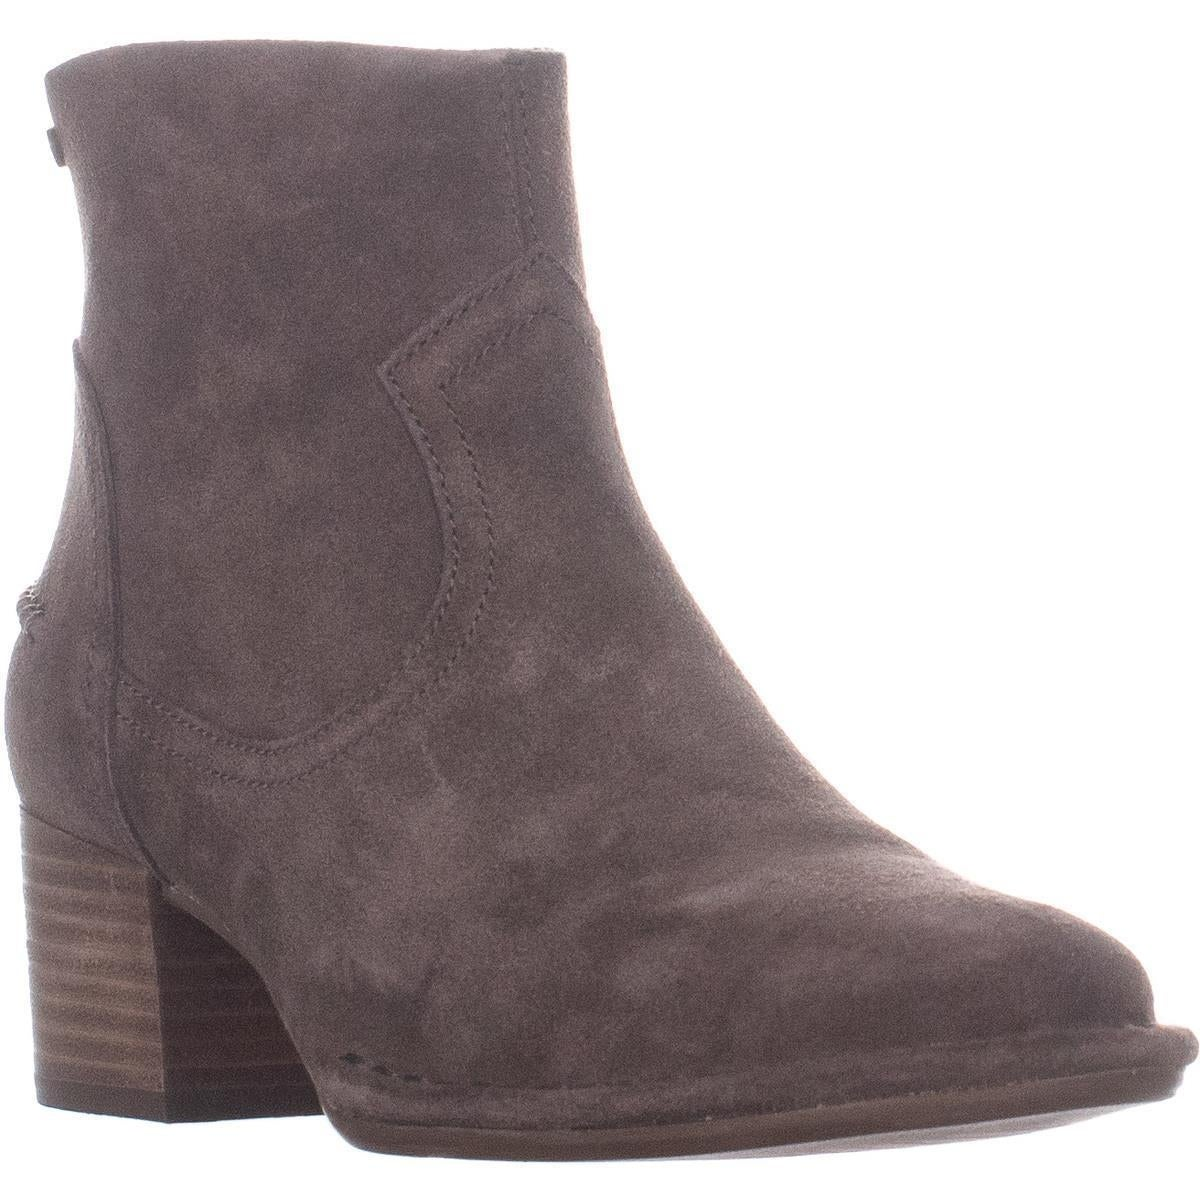 806915074ab UGG Bandara Back Zip High Ankle Boots, Mysterious